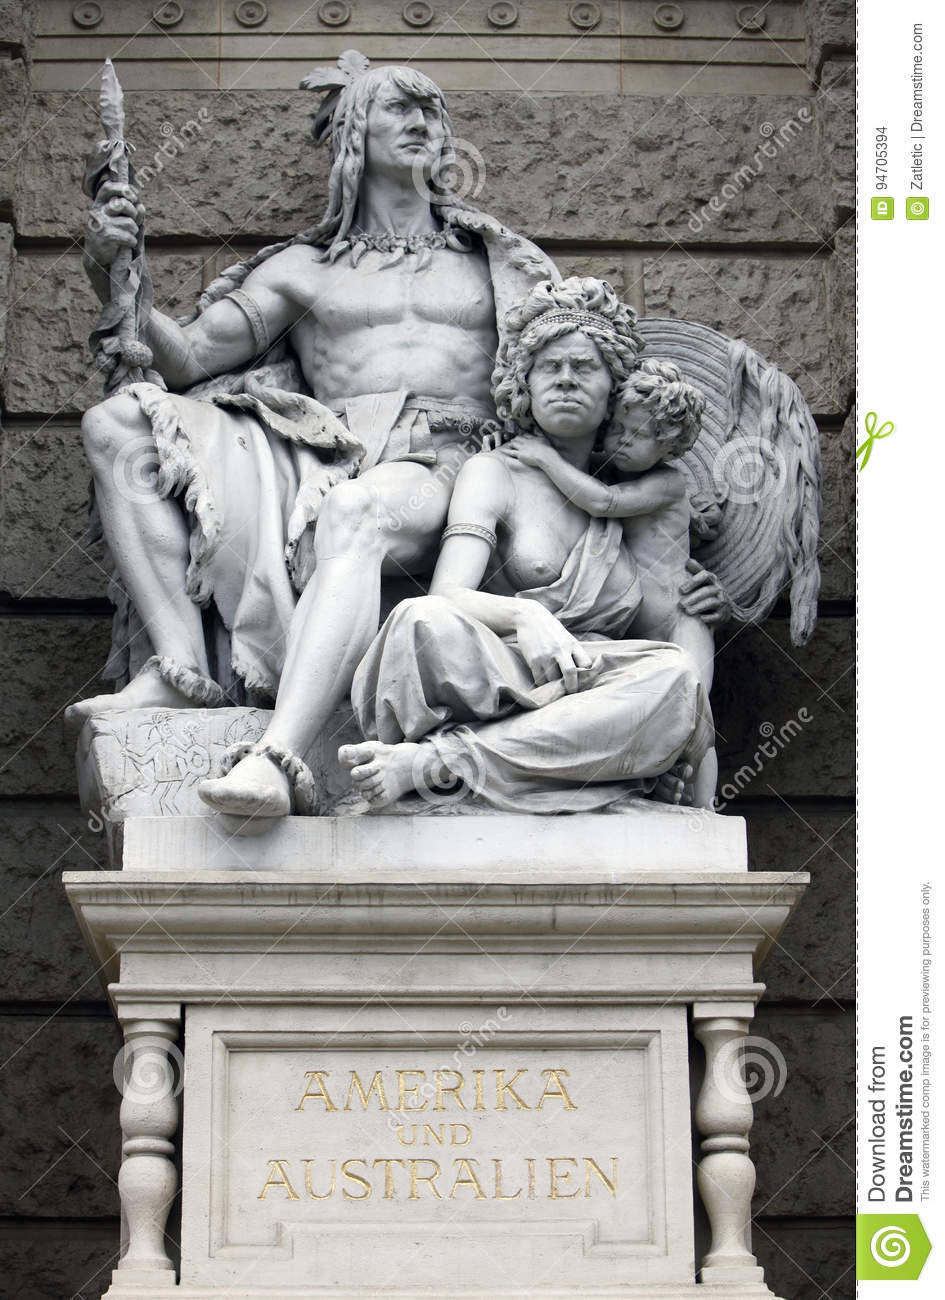 America and Australia, statues depicting personifications of the continents. Naturhistorisches Museum, Vienna